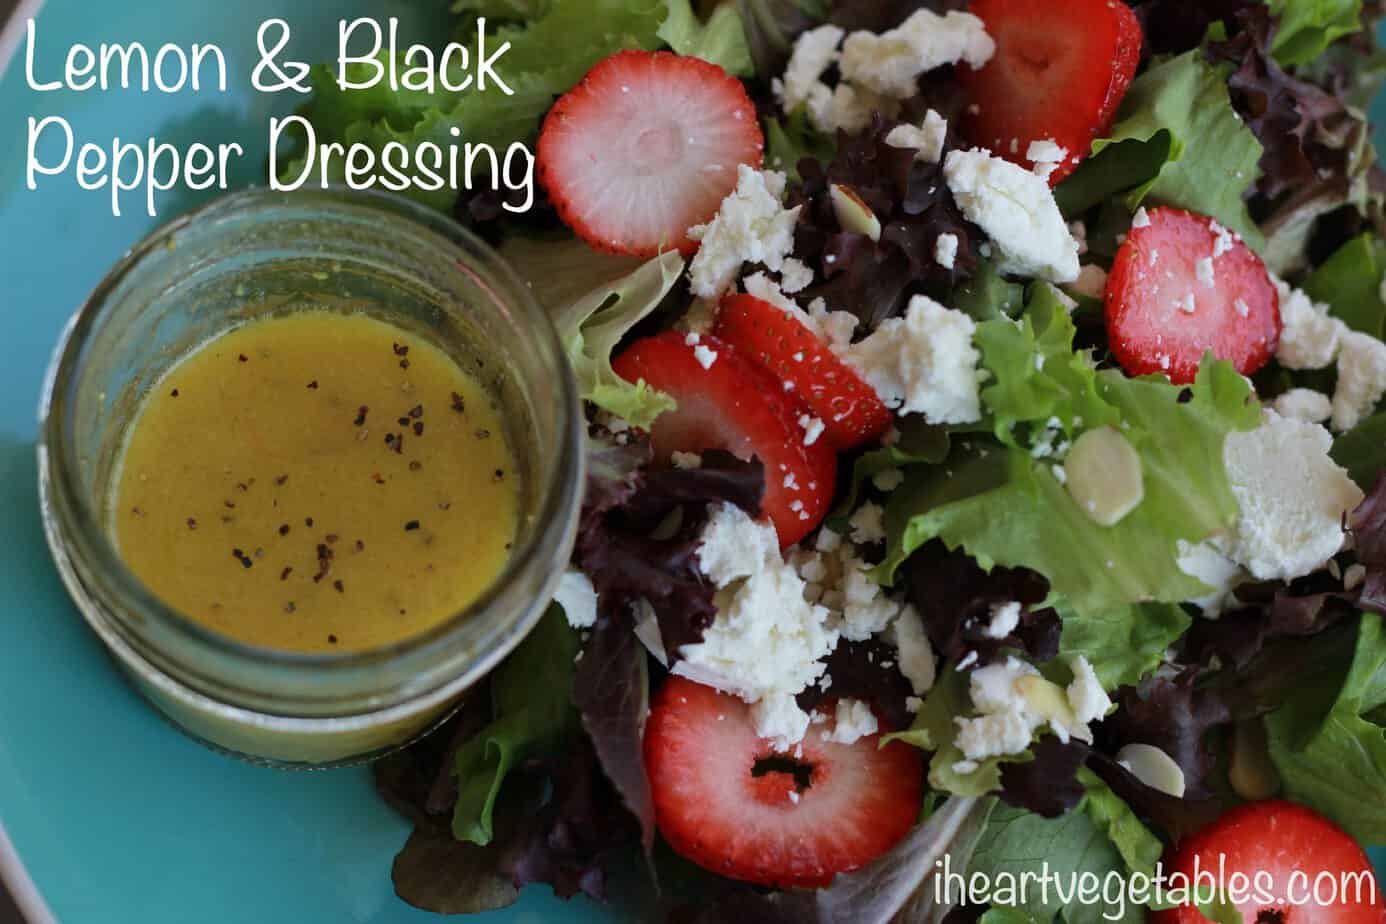 Lemon & Black Pepper Dressing